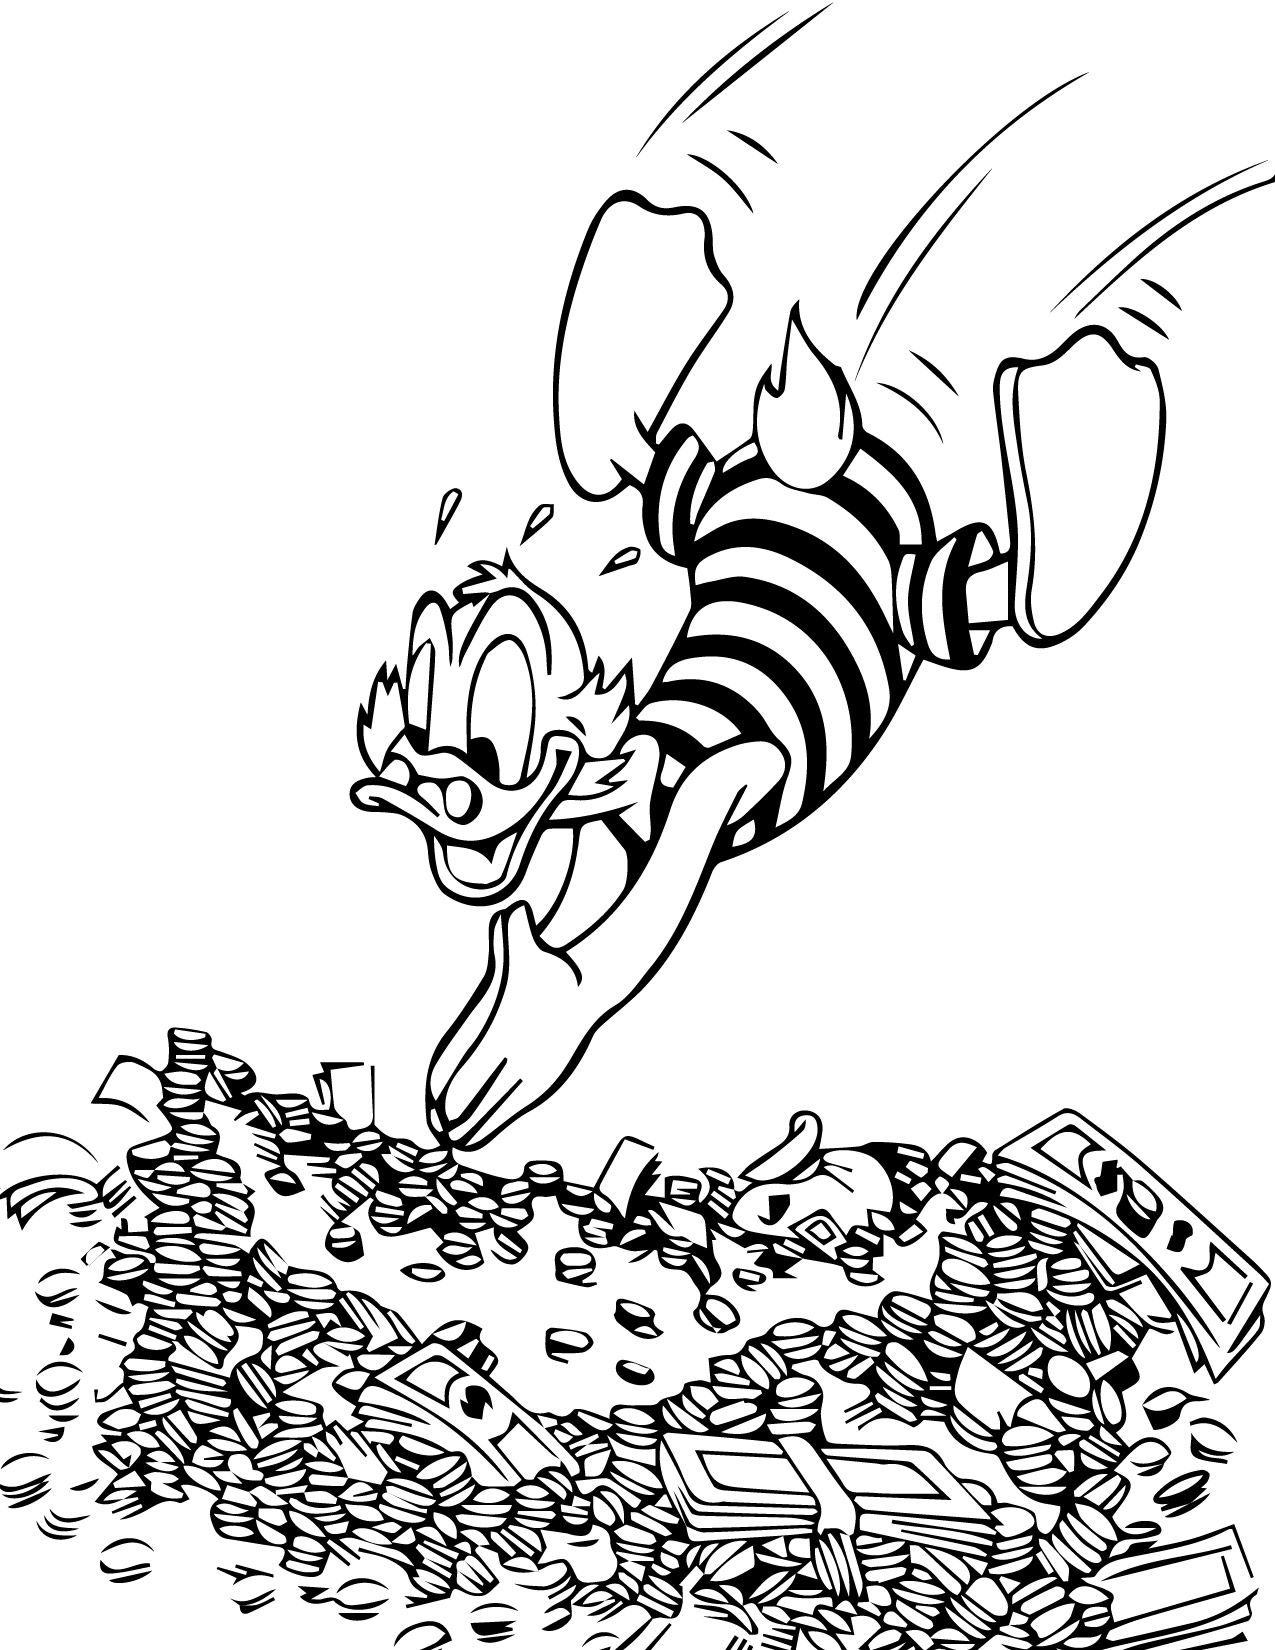 cool donald duck swimming money rich coloring page check more at